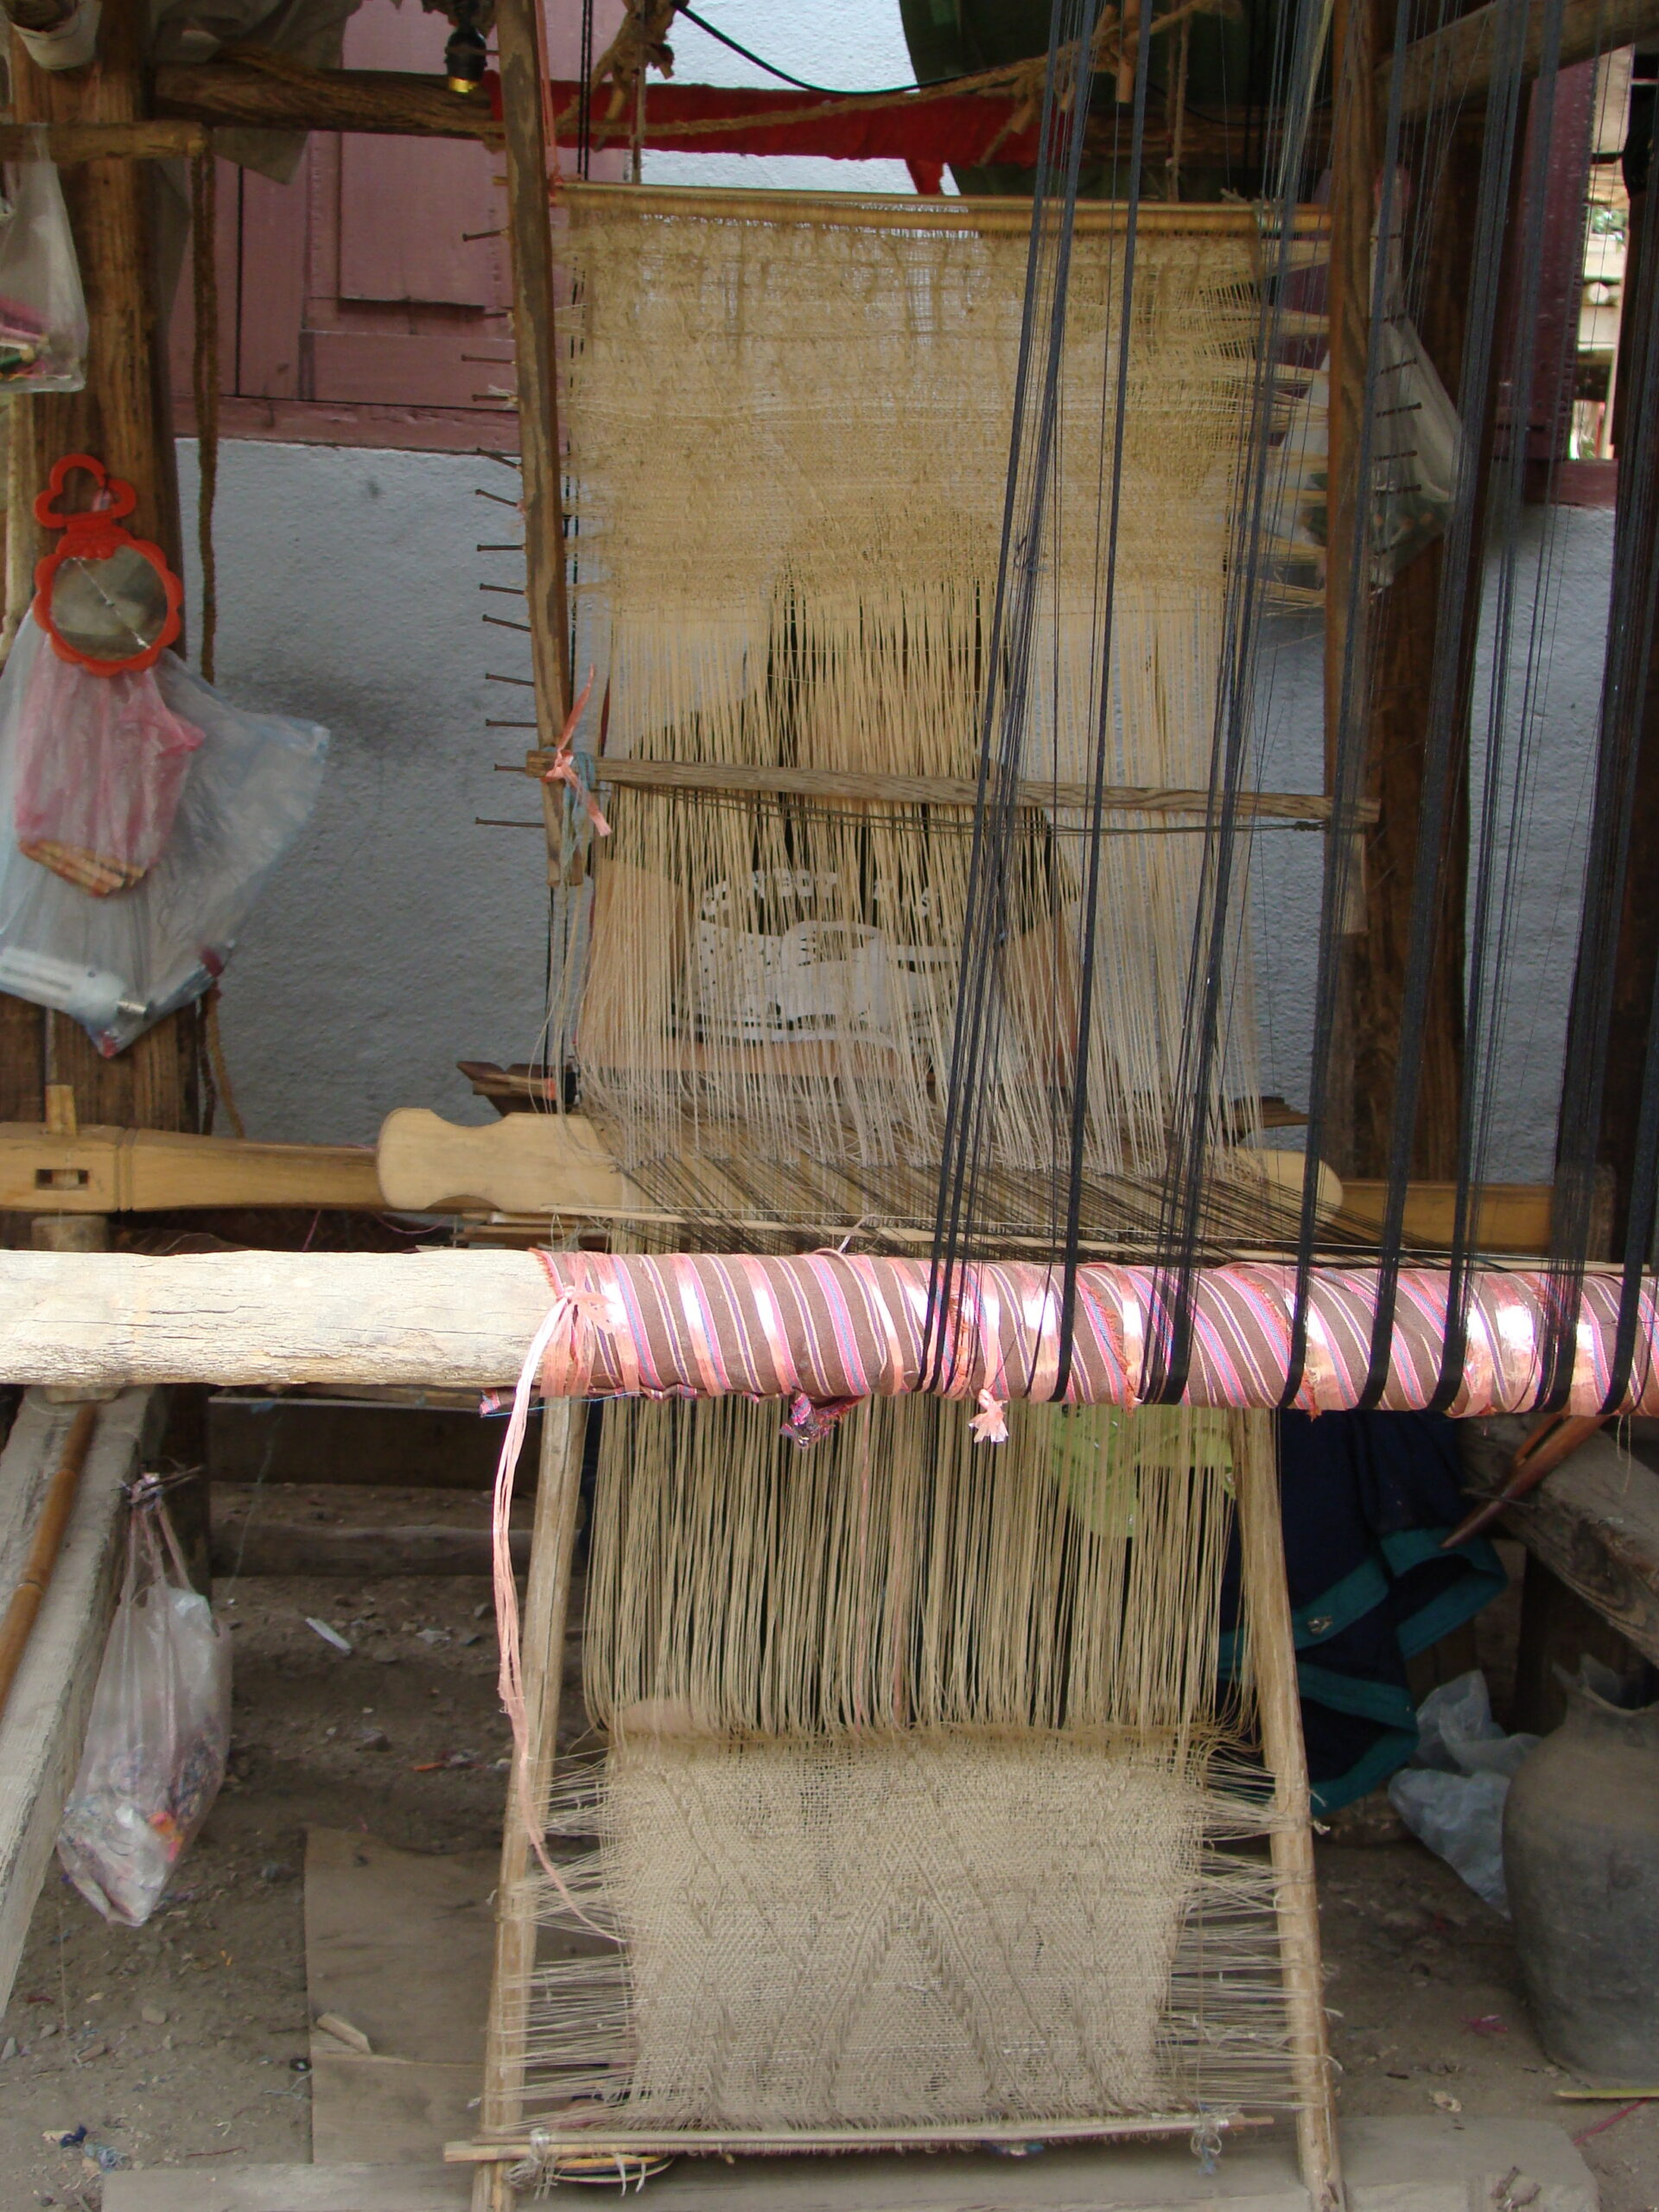 The design of the template-pattern can be clearly seen on this loom.  After each horizontal memory-thread, which represents a line of pattern in the weft, is used, it is moved from the template's top to the bottom; later, the memory threads will be moved from bottom to top, creating the traditional mirror-image motifs in the design-work.